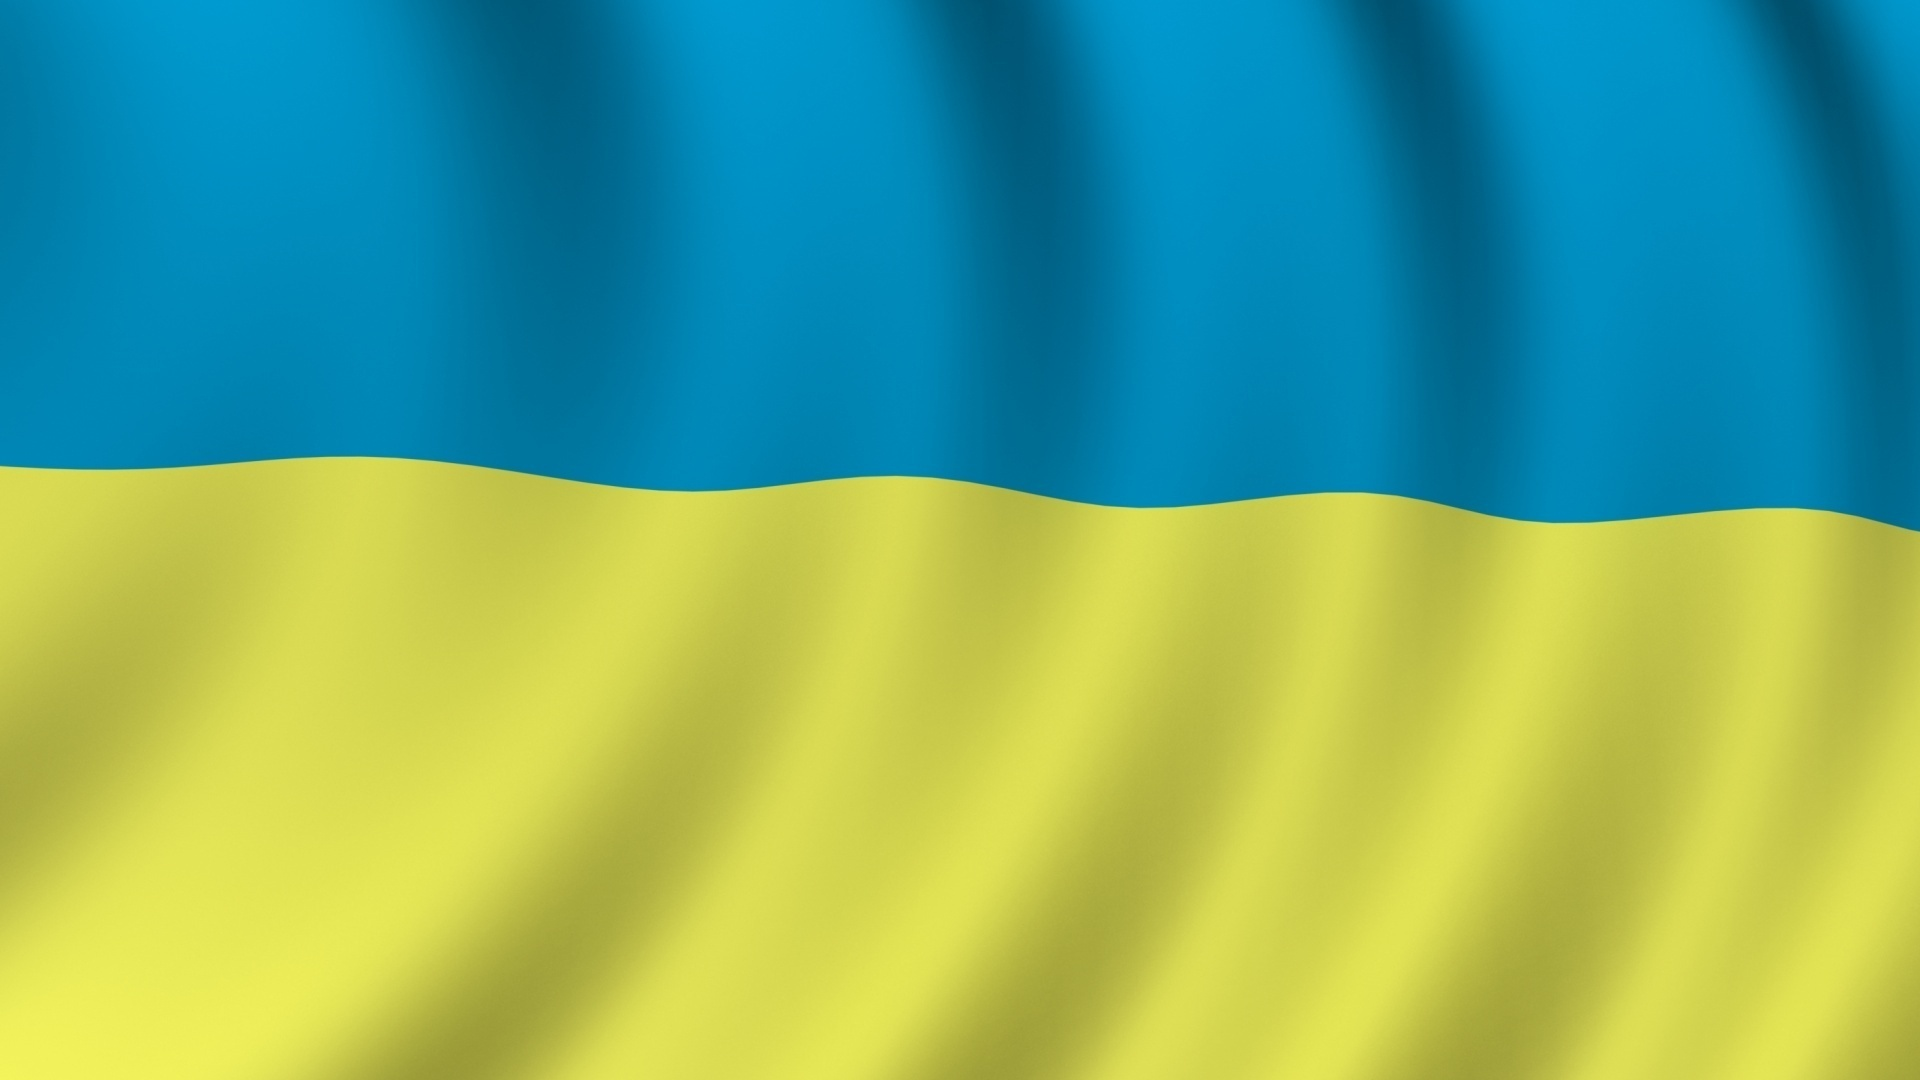 Ukraine Flag Wallpapers - 1920x1080 - 209736